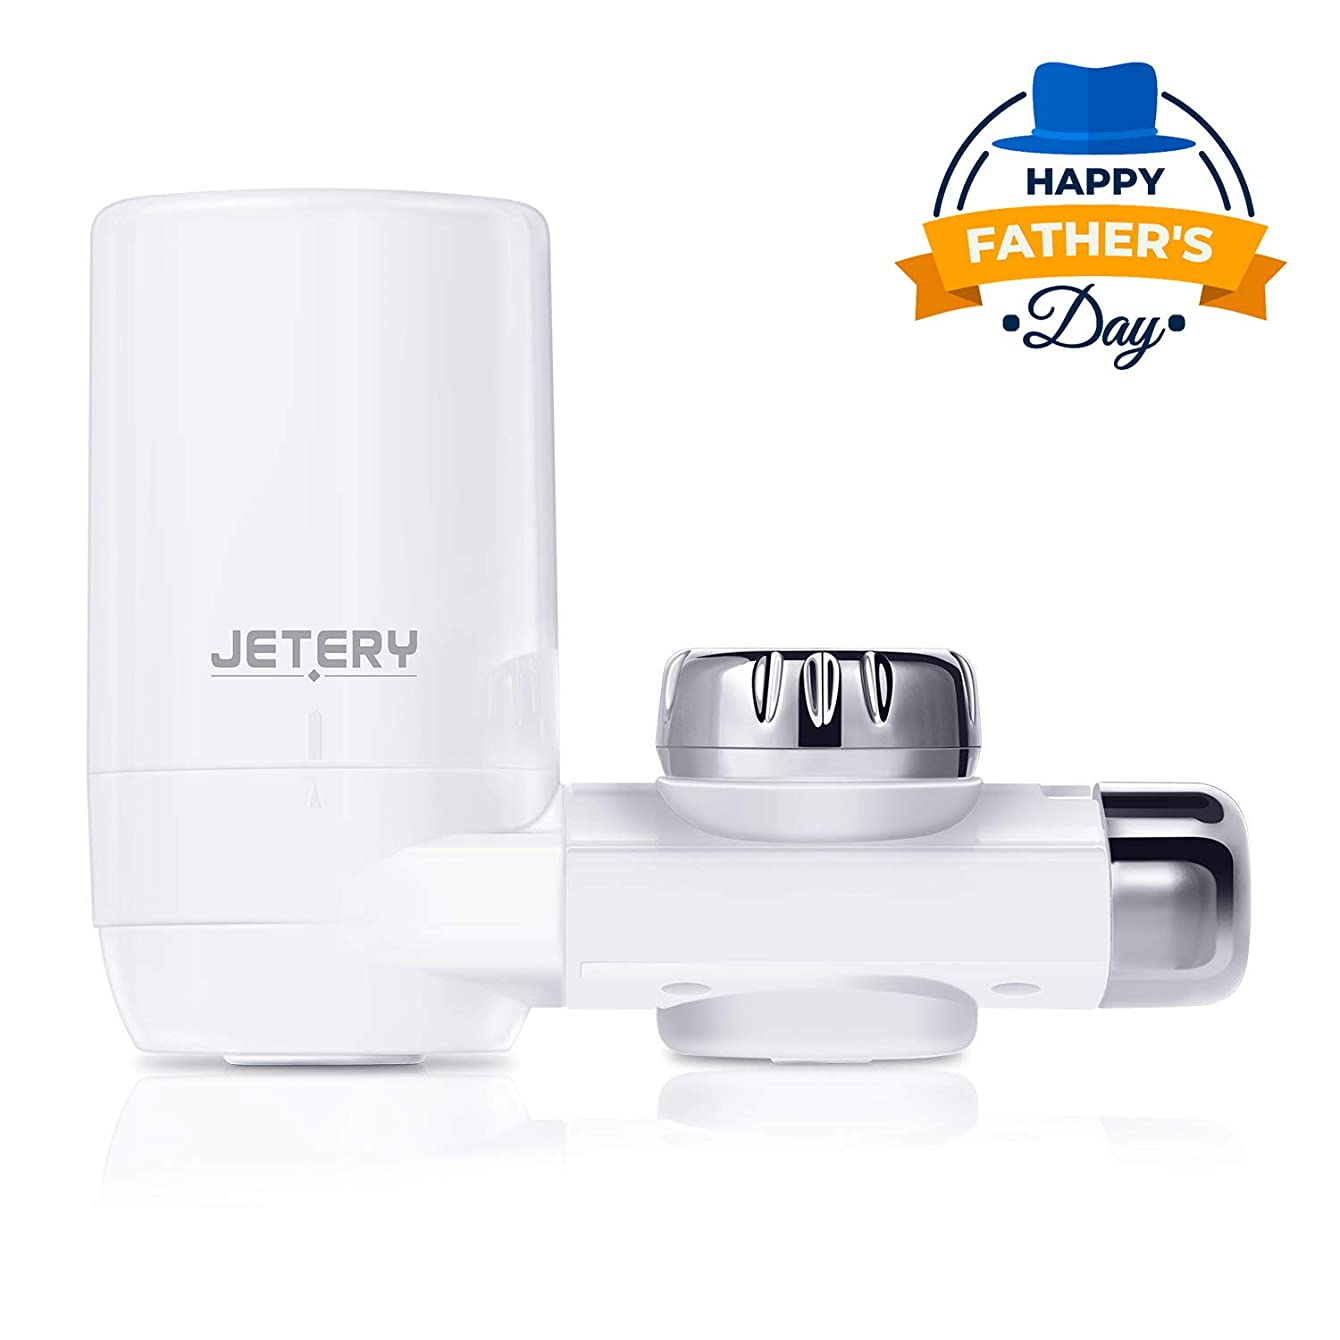 JETERY Faucet Water Filter - 320-Gallon Long-Lasting Tap Water Filtration System with Carbon Fiber Filter for Home Kitchen, Fits Standard Faucets, JT-5110